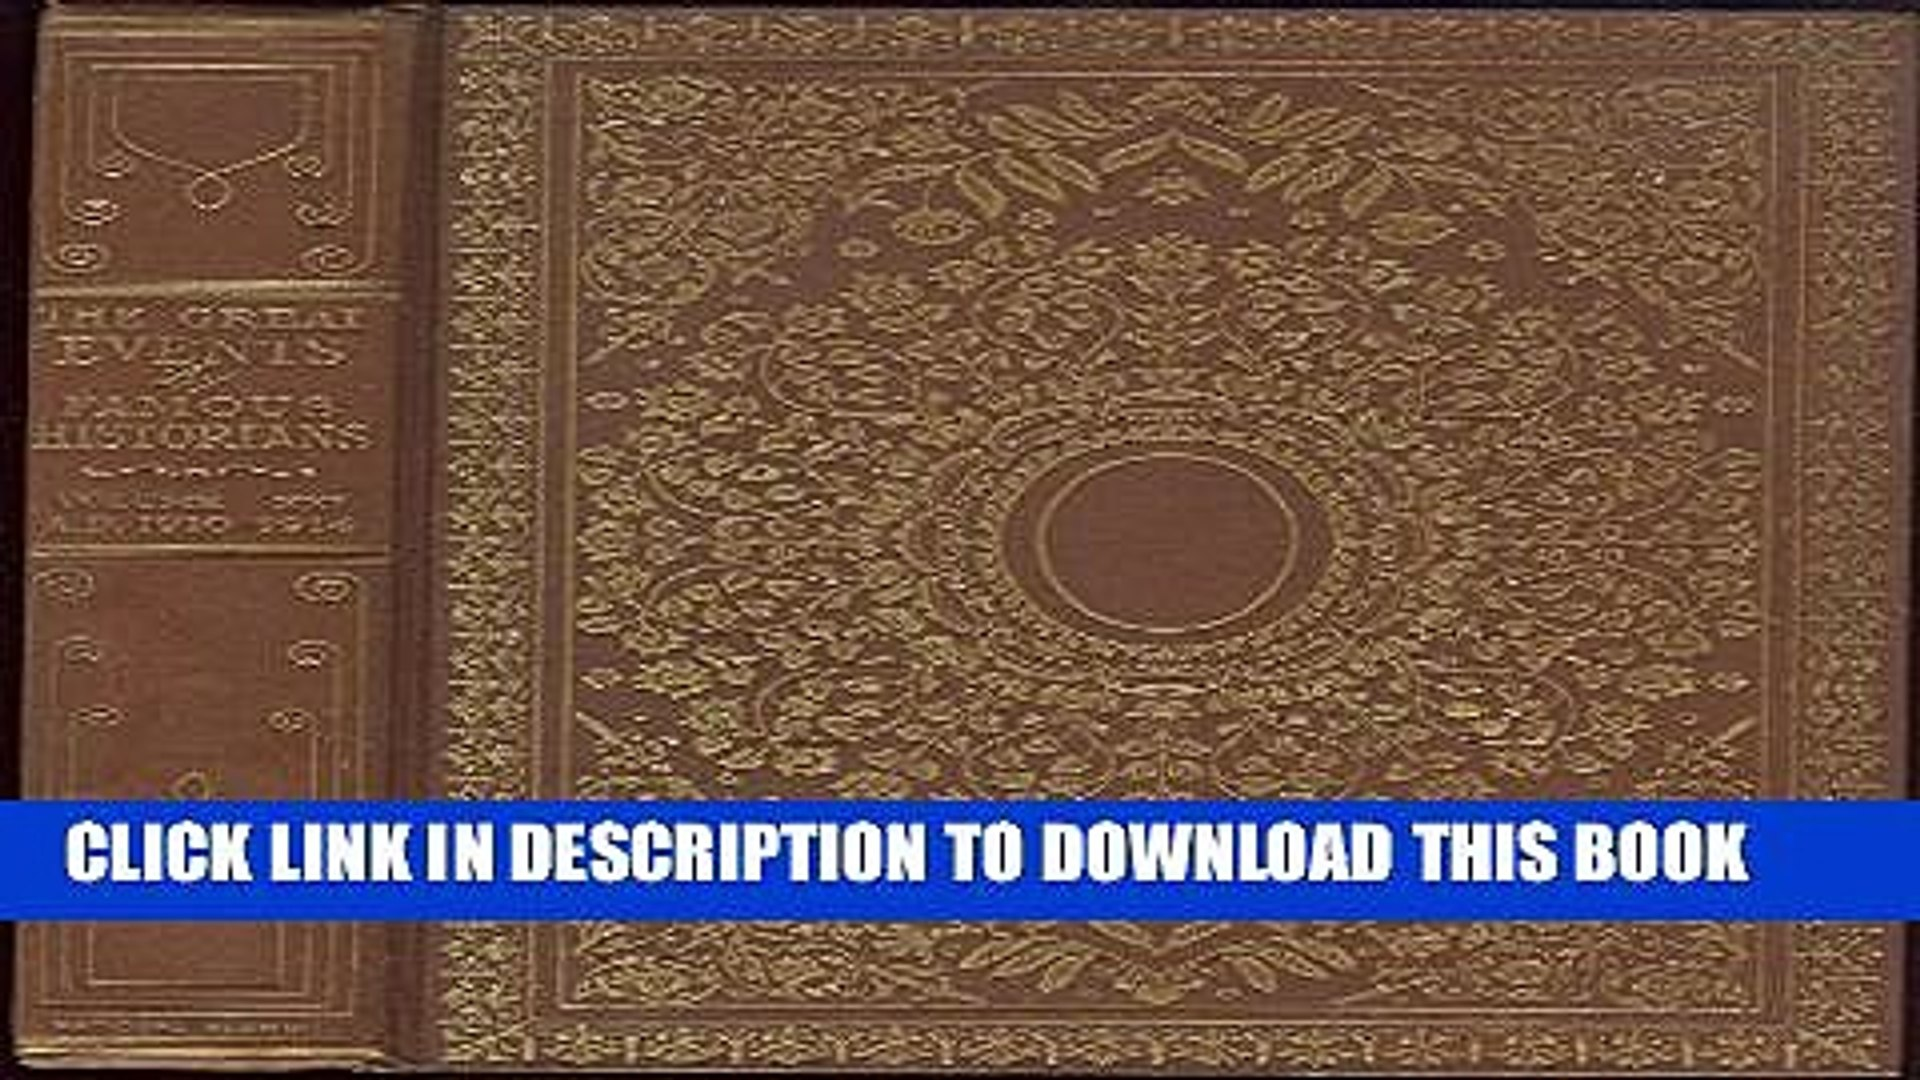 [PDF] The Great Events by Famous Historians A.D. 1910-1914, Volume XXI (21) Popular Online